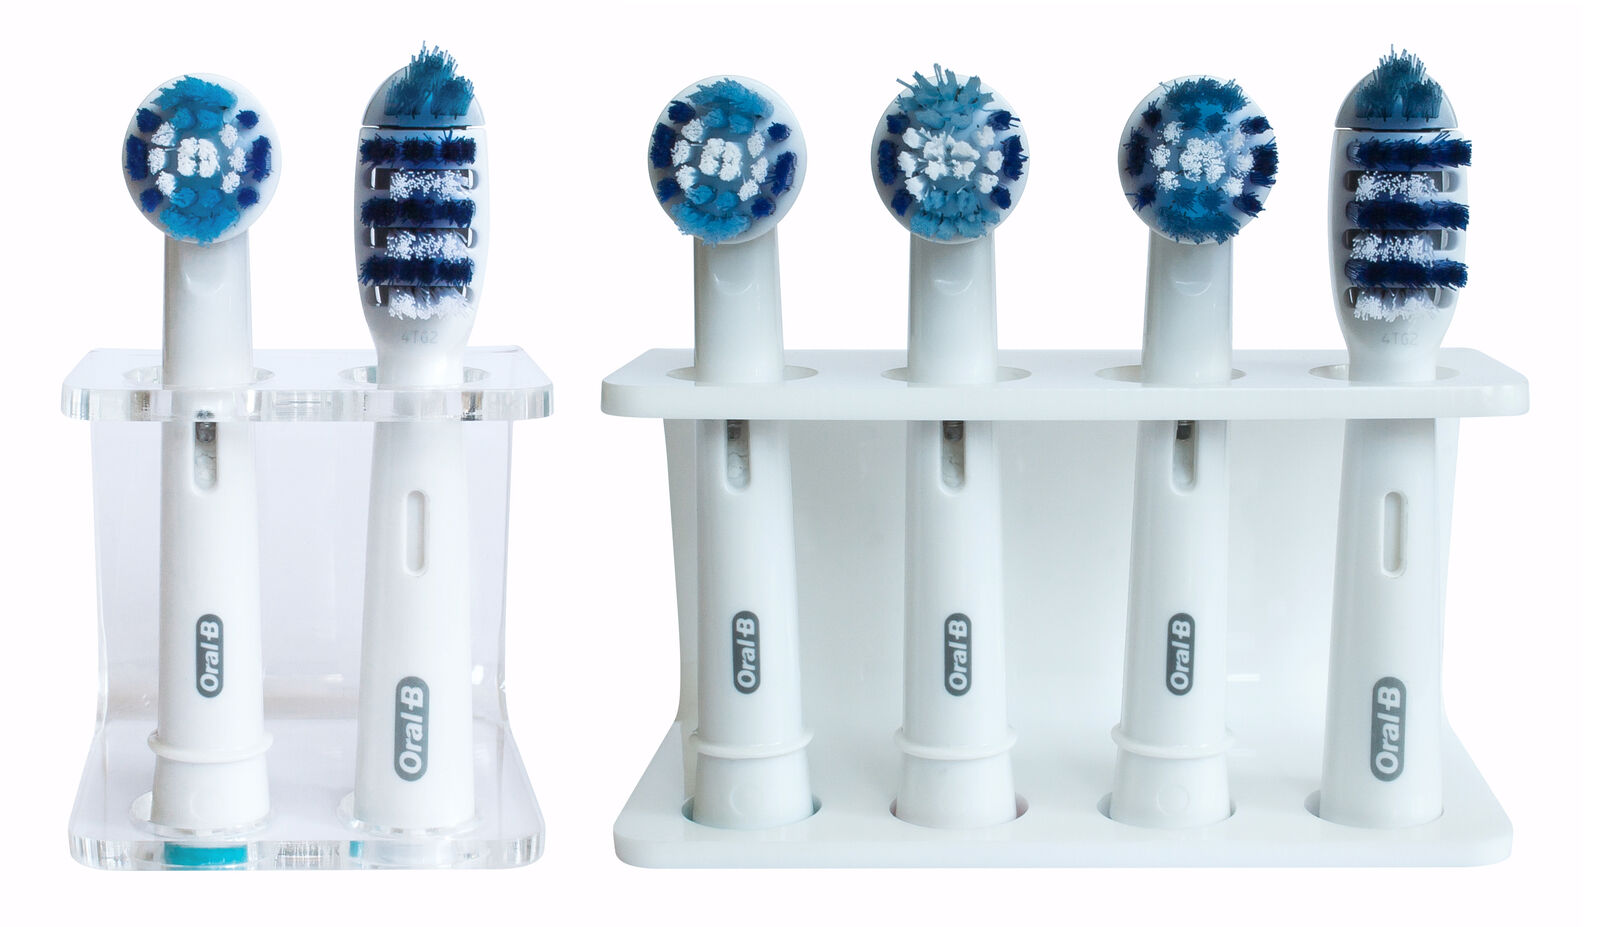 Seemii Electric Toothbrush Holders